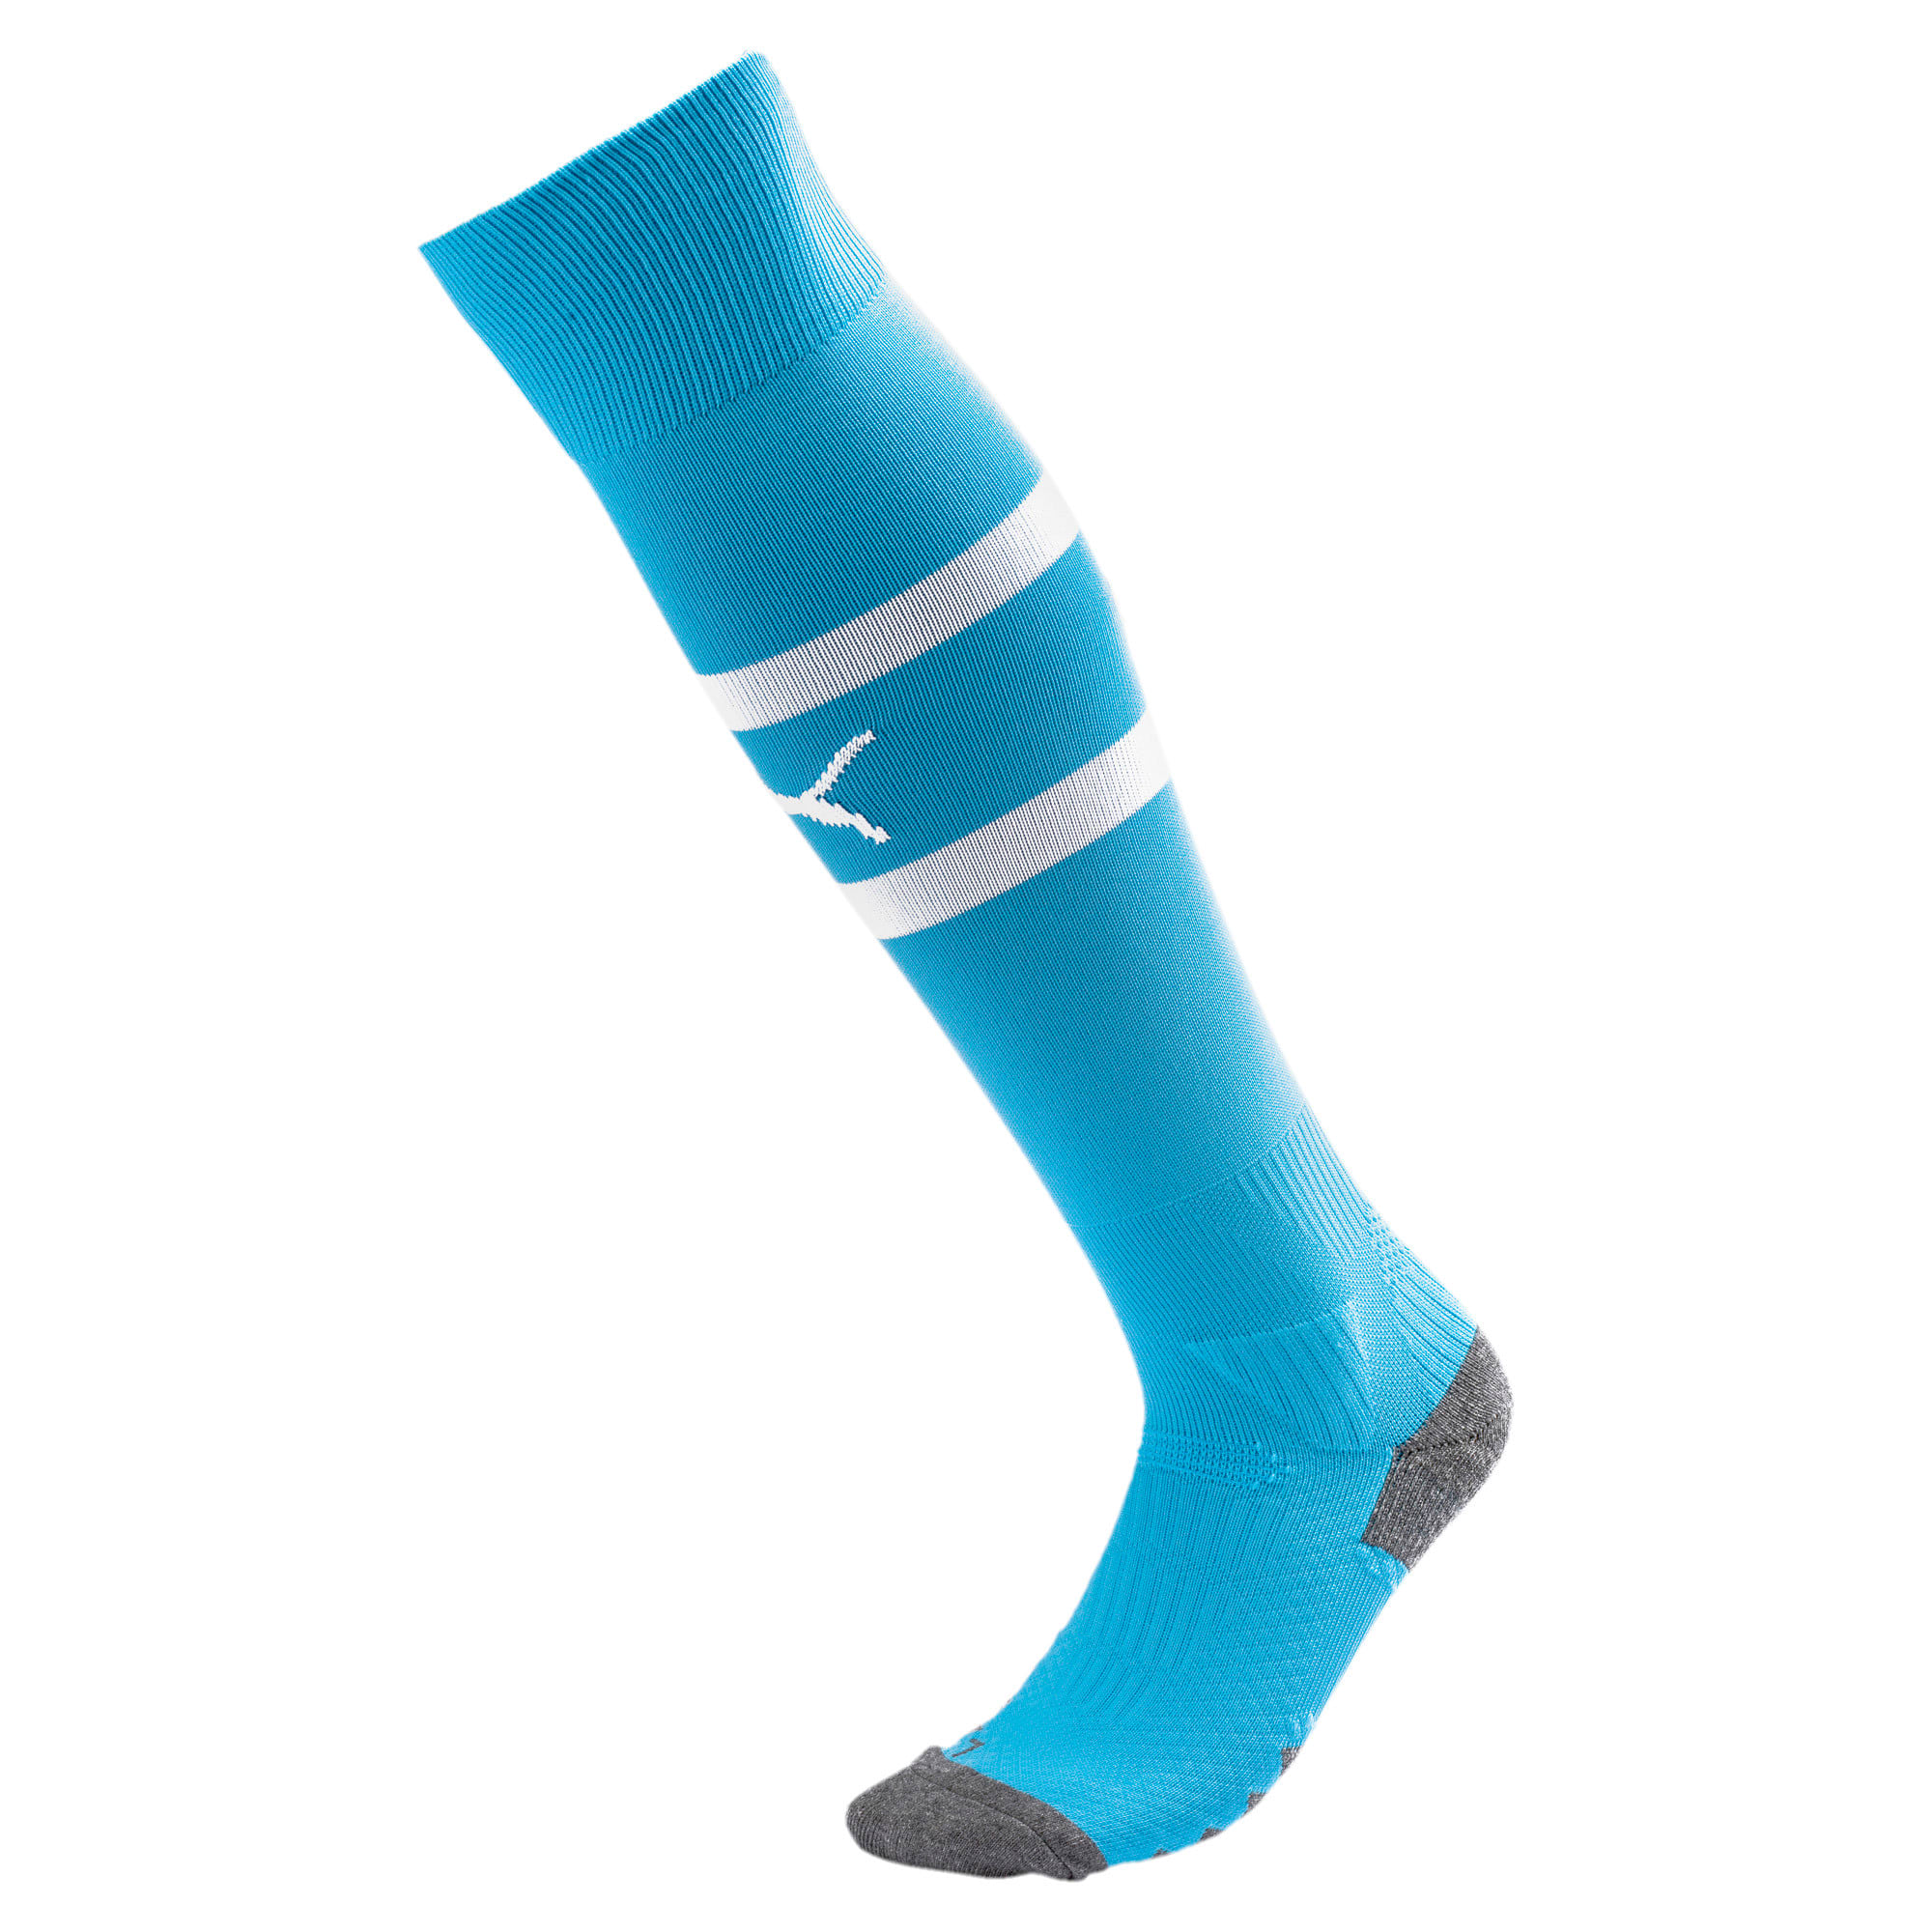 Thumbnail 1 of Valencia CF Herren Band Socken, Bleu Azur-Puma White, medium